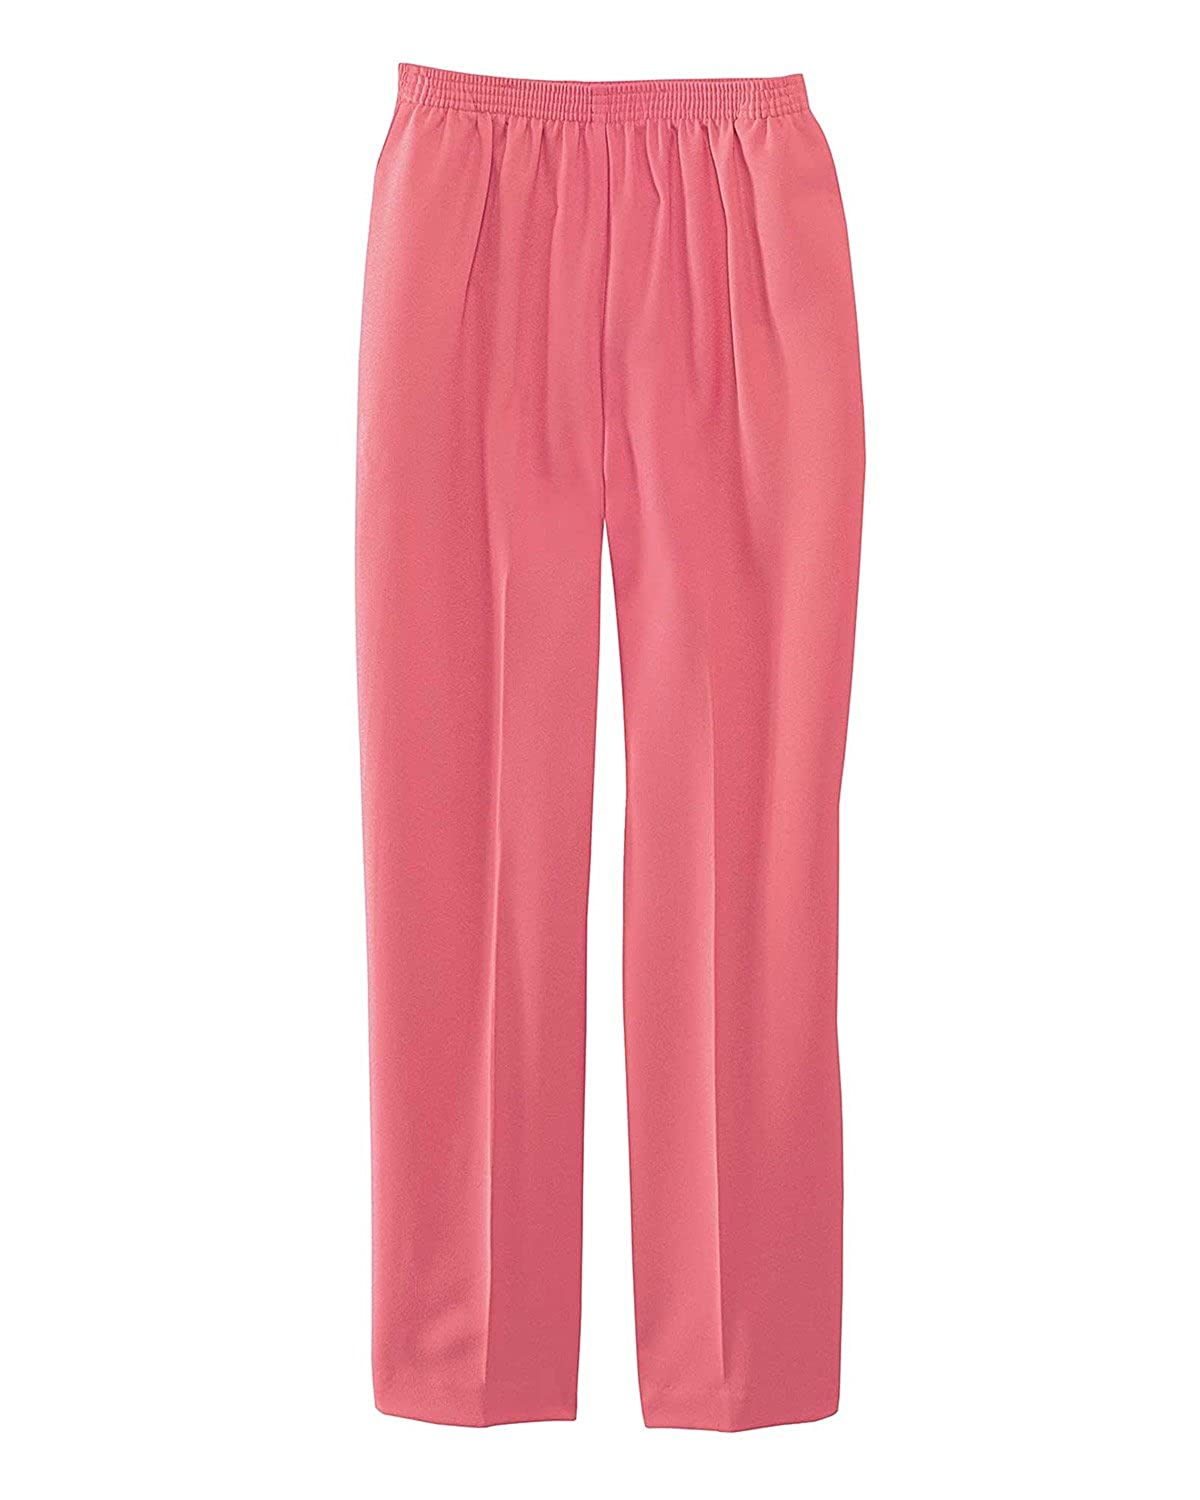 Alfred Dunner Womens Classic Missy Proportioned Medium Pant